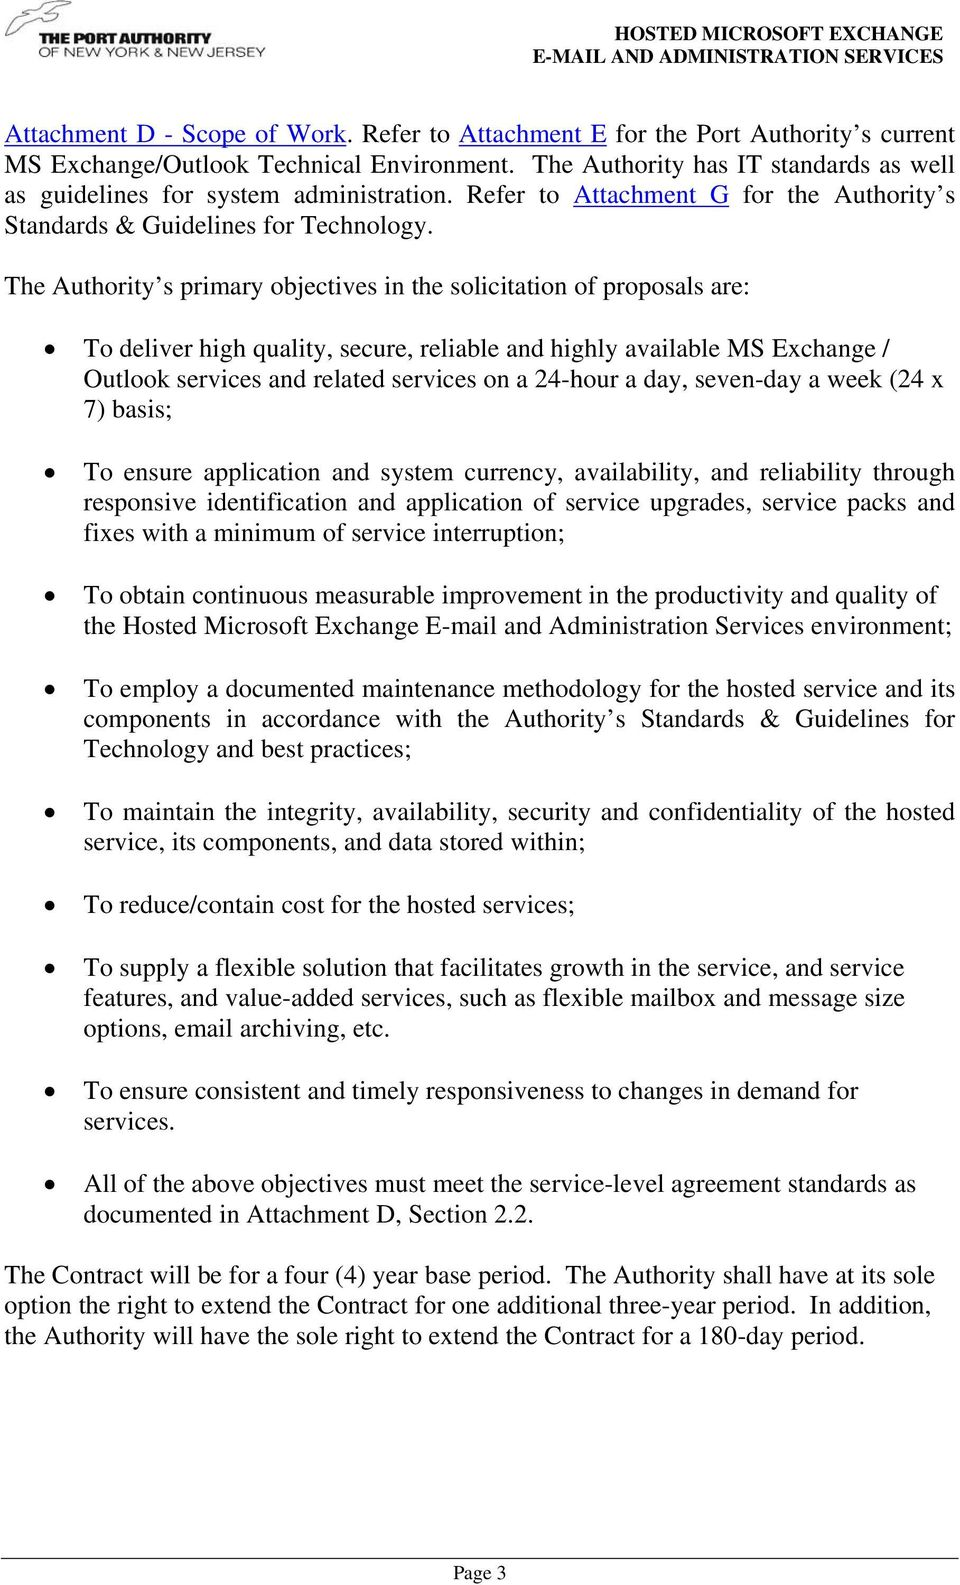 The Authority s primary objectives in the solicitation of proposals are: To deliver high quality, secure, reliable and highly available MS Exchange / Outlook services and related services on a